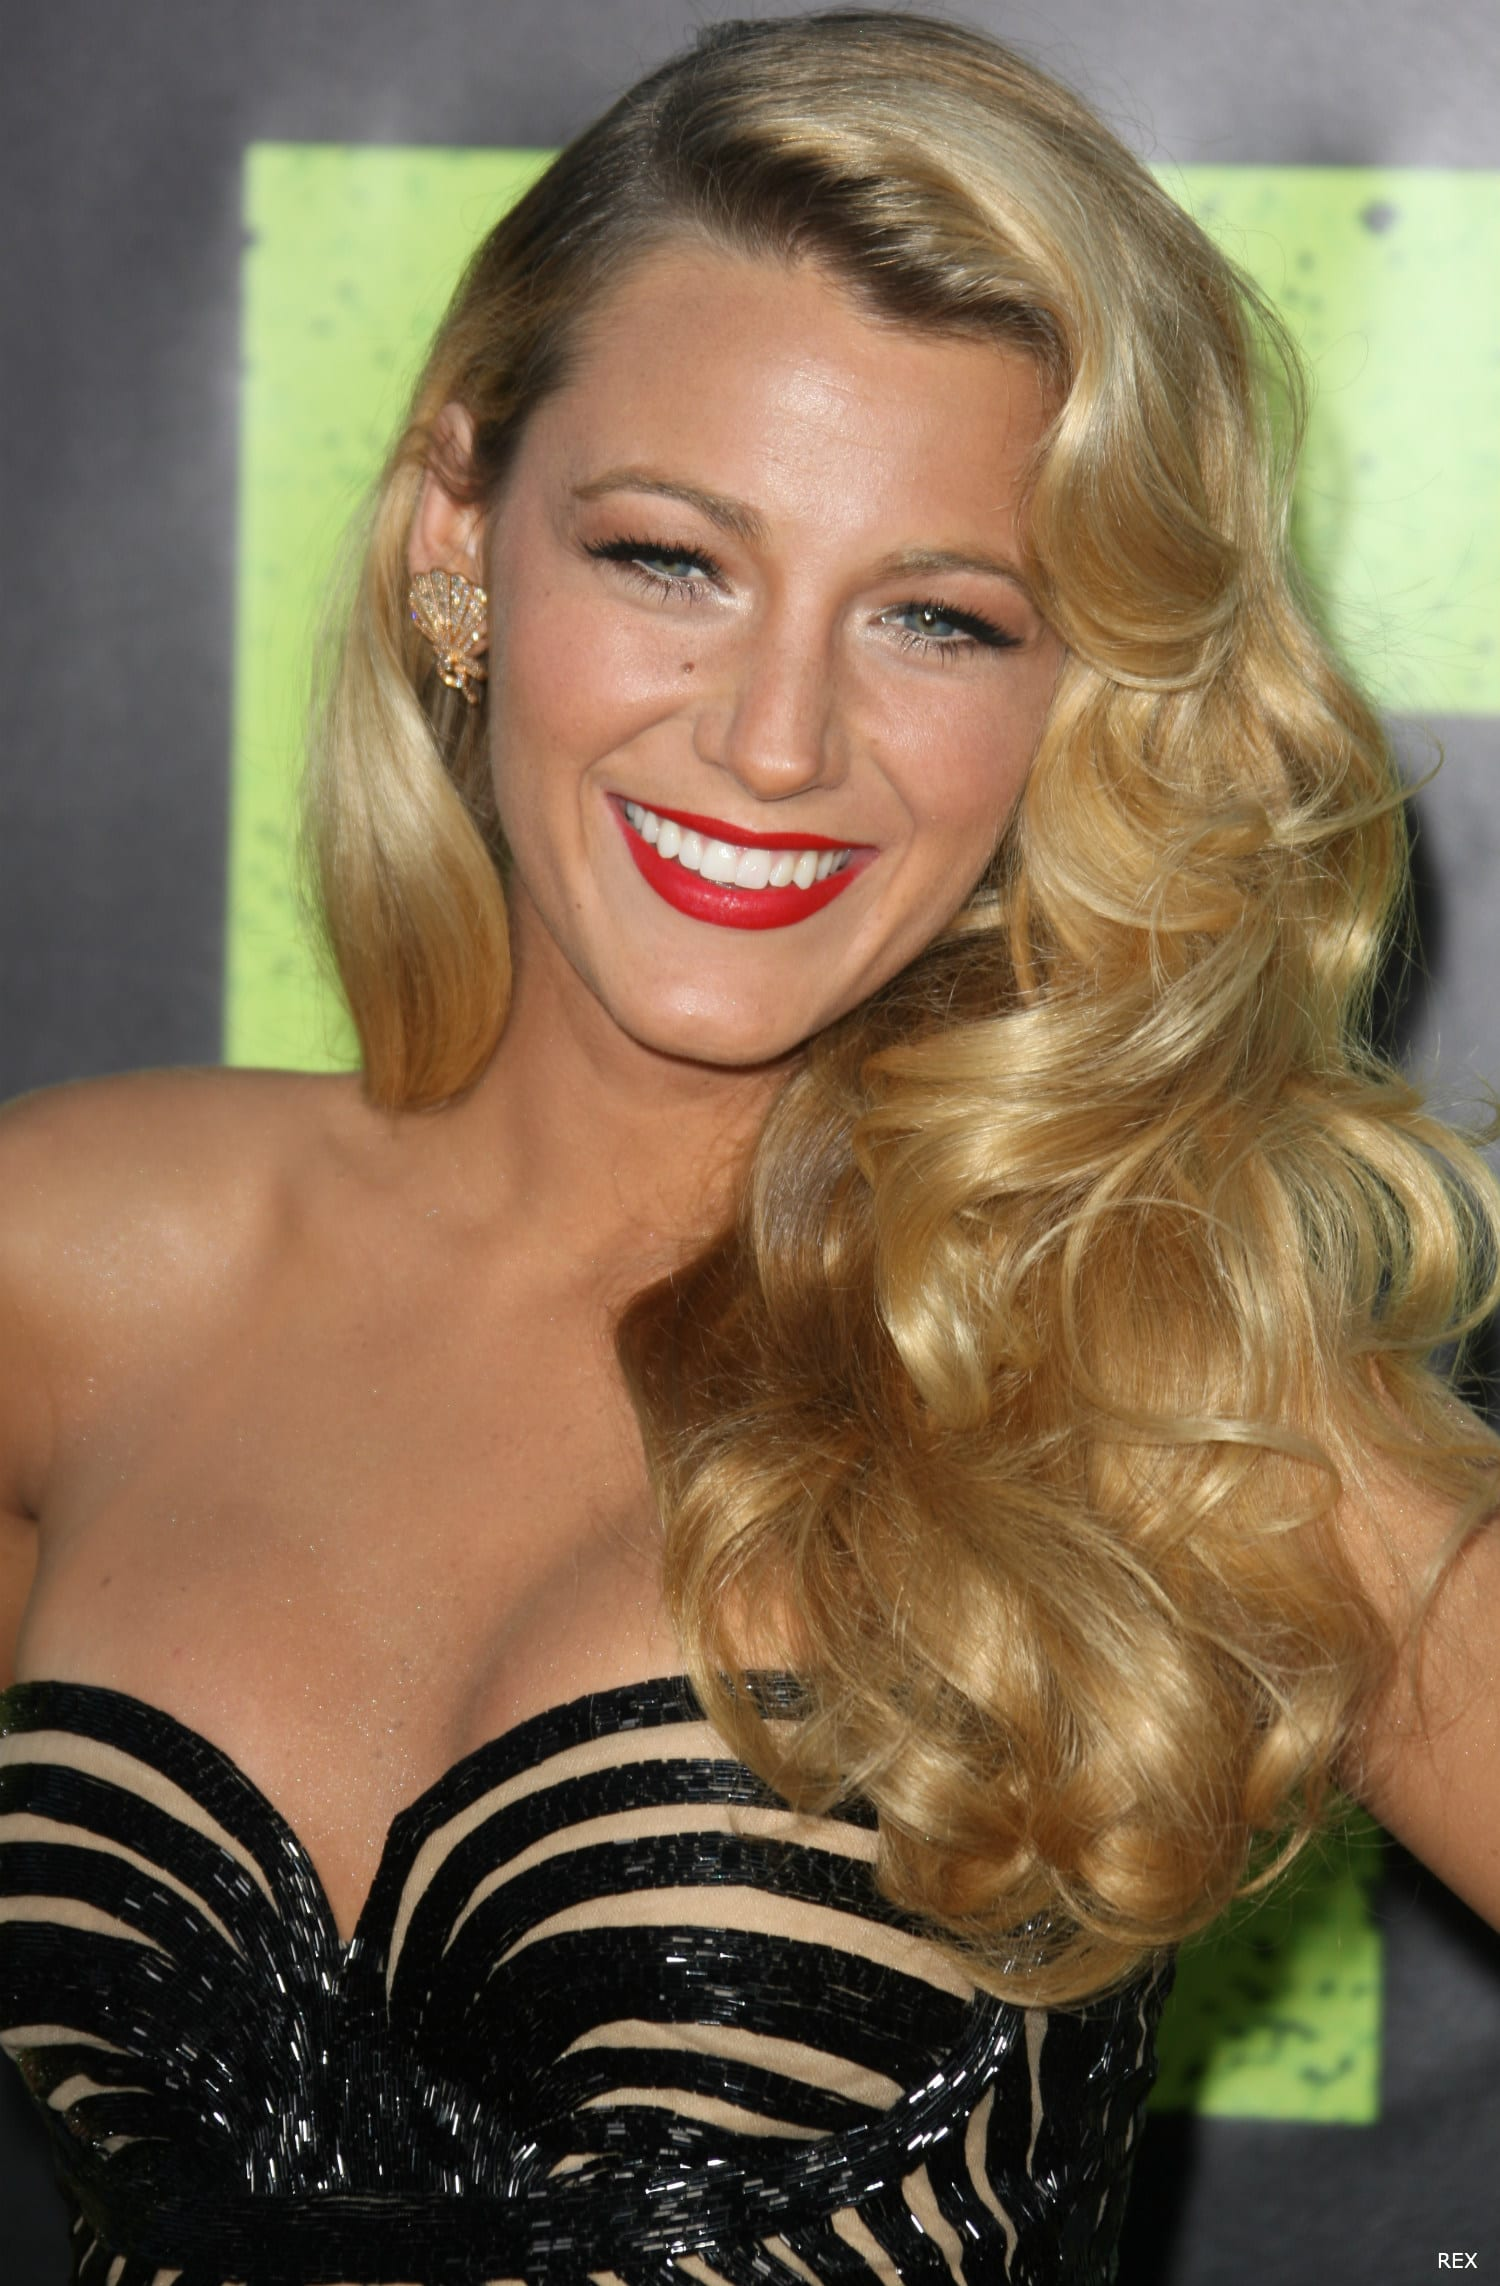 Blake Lively at the Savages Premiere in Los Angeles - Blake Lively Hairstyles